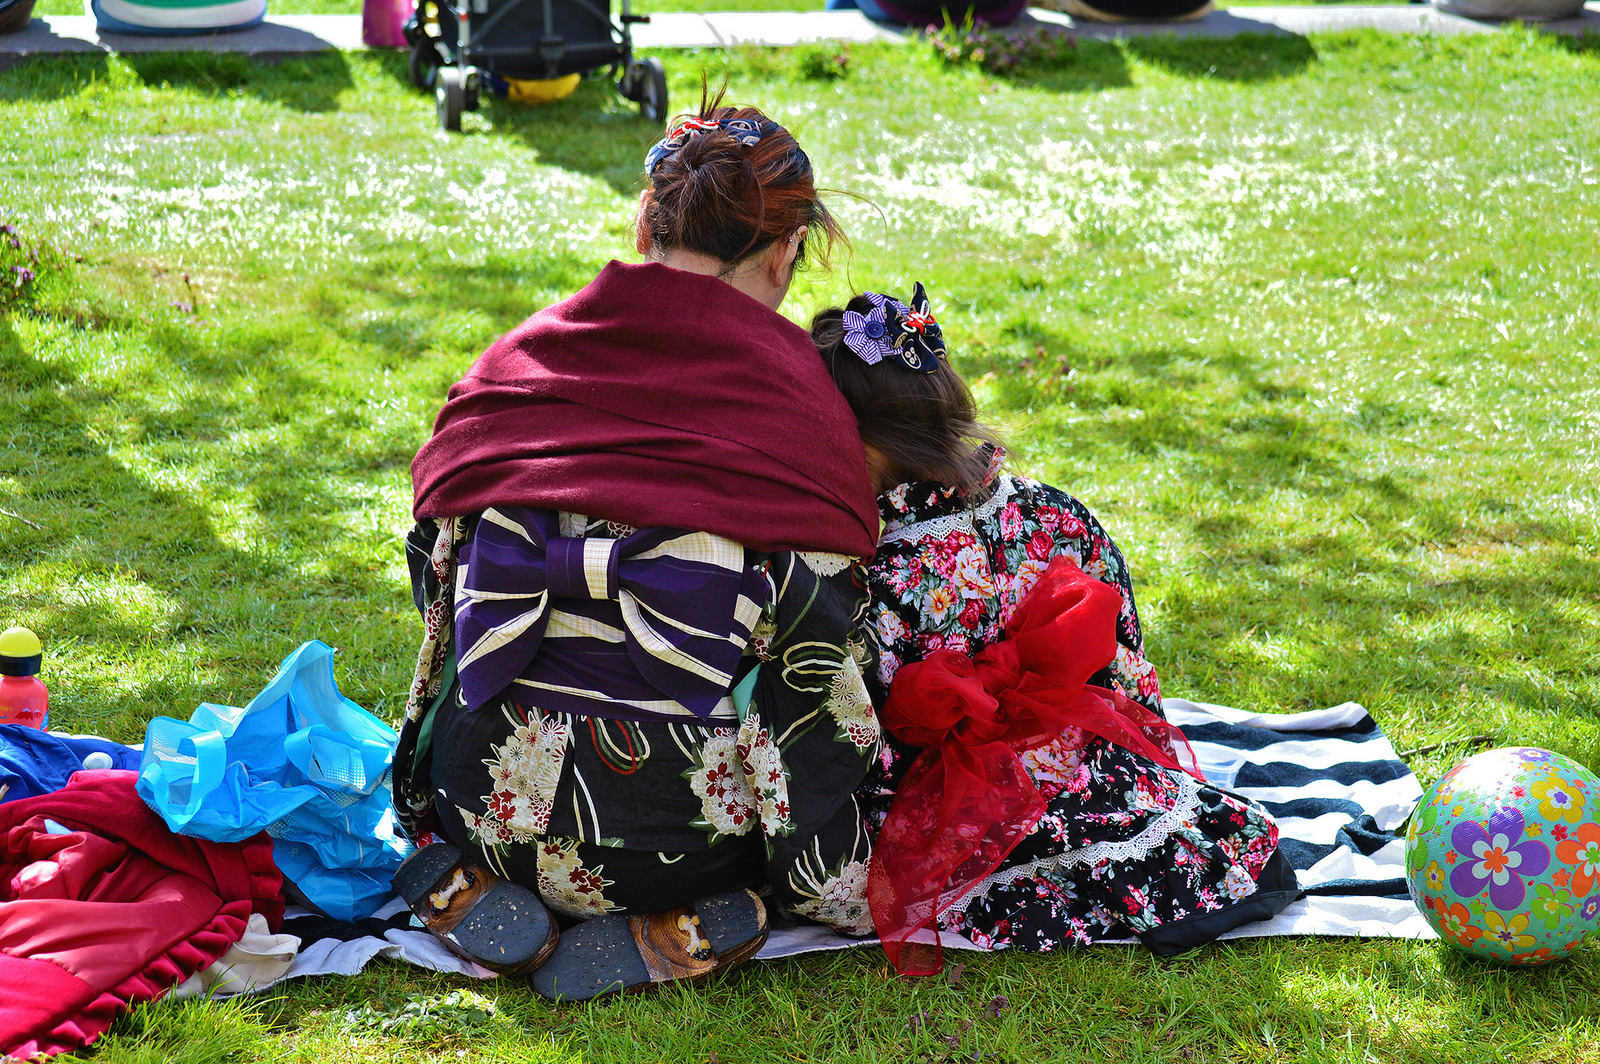 Mother and daughter share a picnic at the Kersenbloesempark.